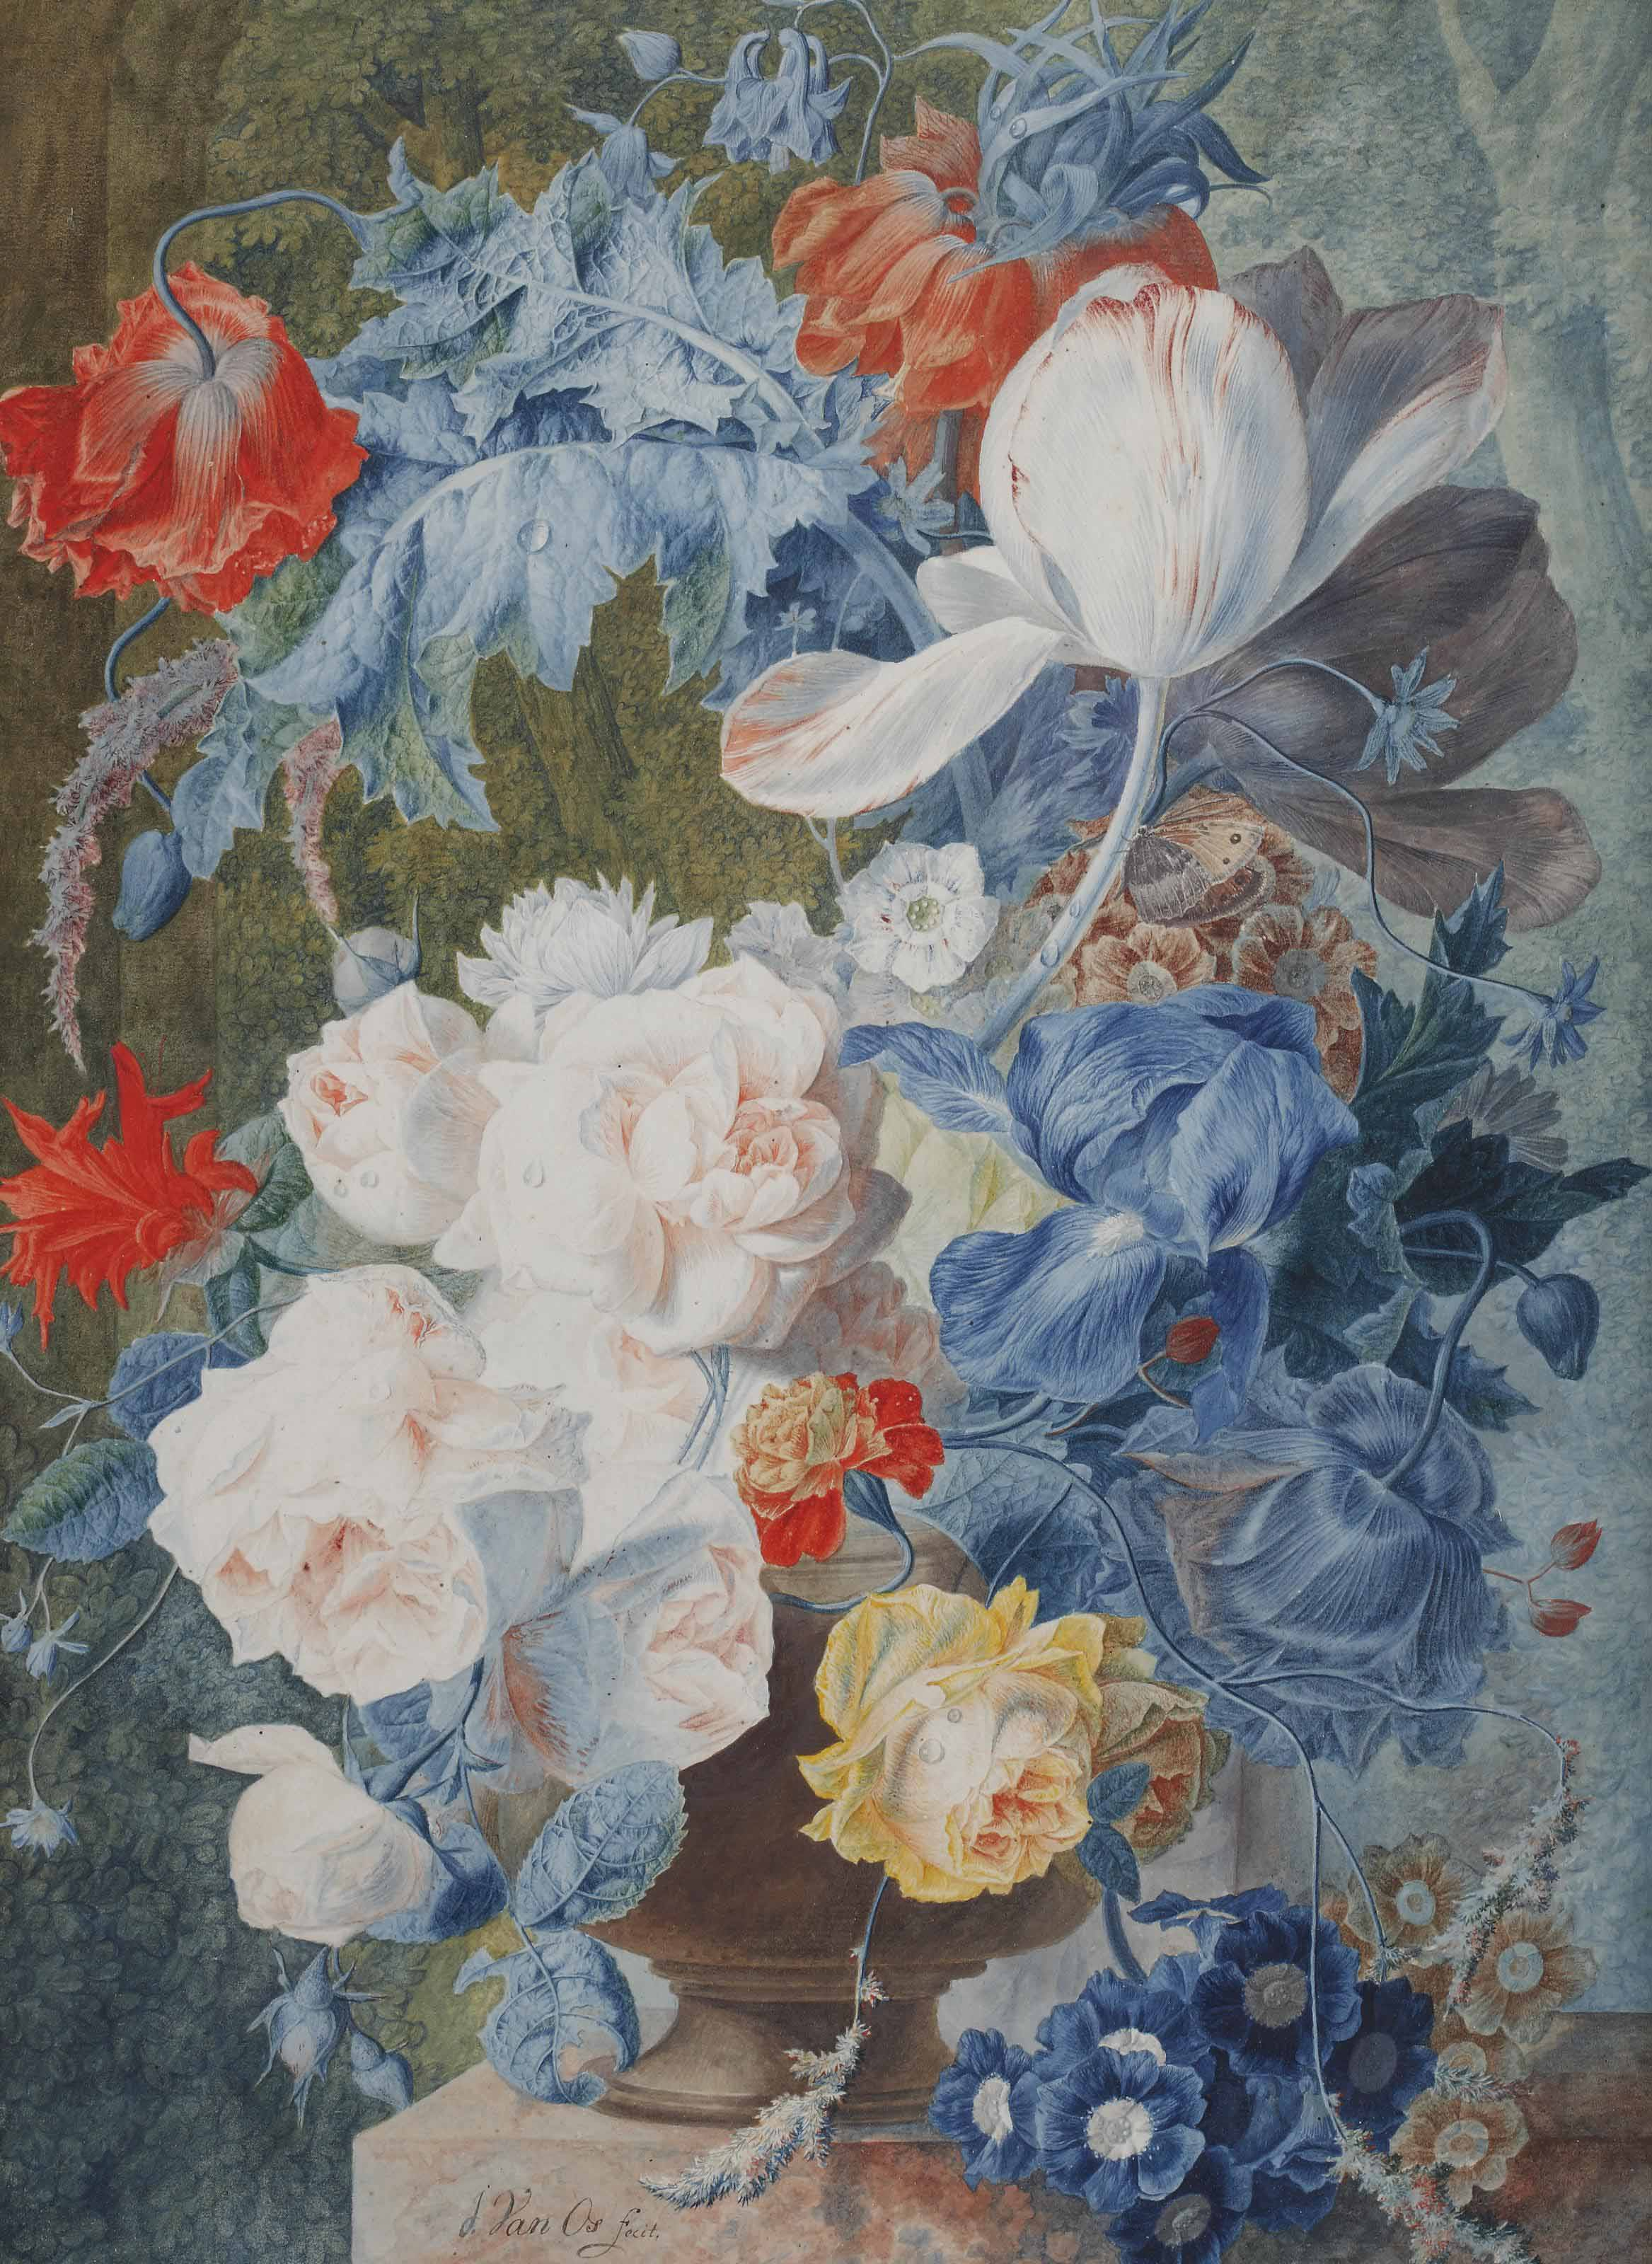 A colourful bouquet of roses, poppies, tulips and primroses in a garden landscape